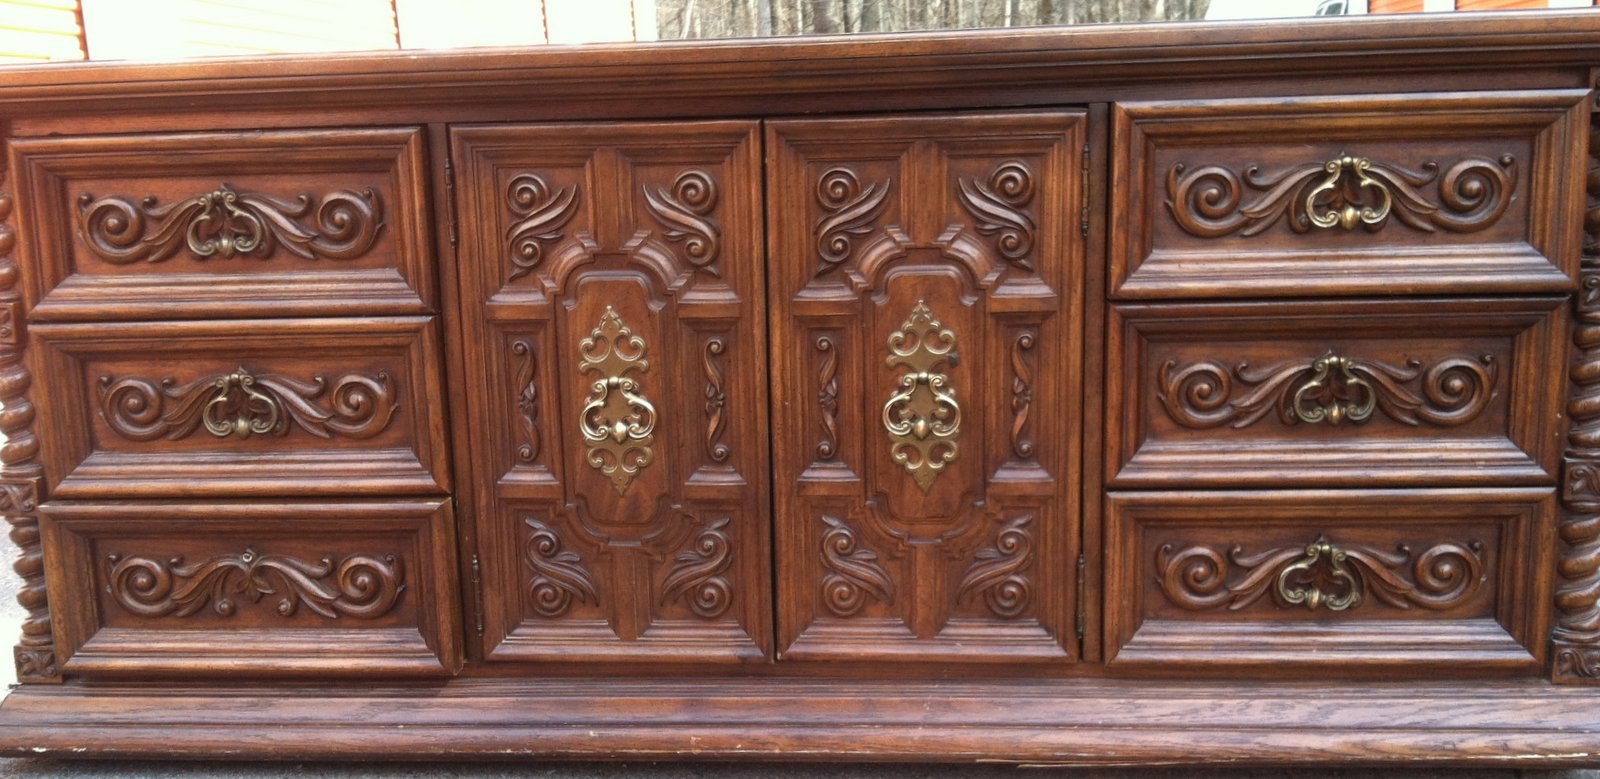 Savard Studios Vintage Ornate Bedroom Set Ready for Paint